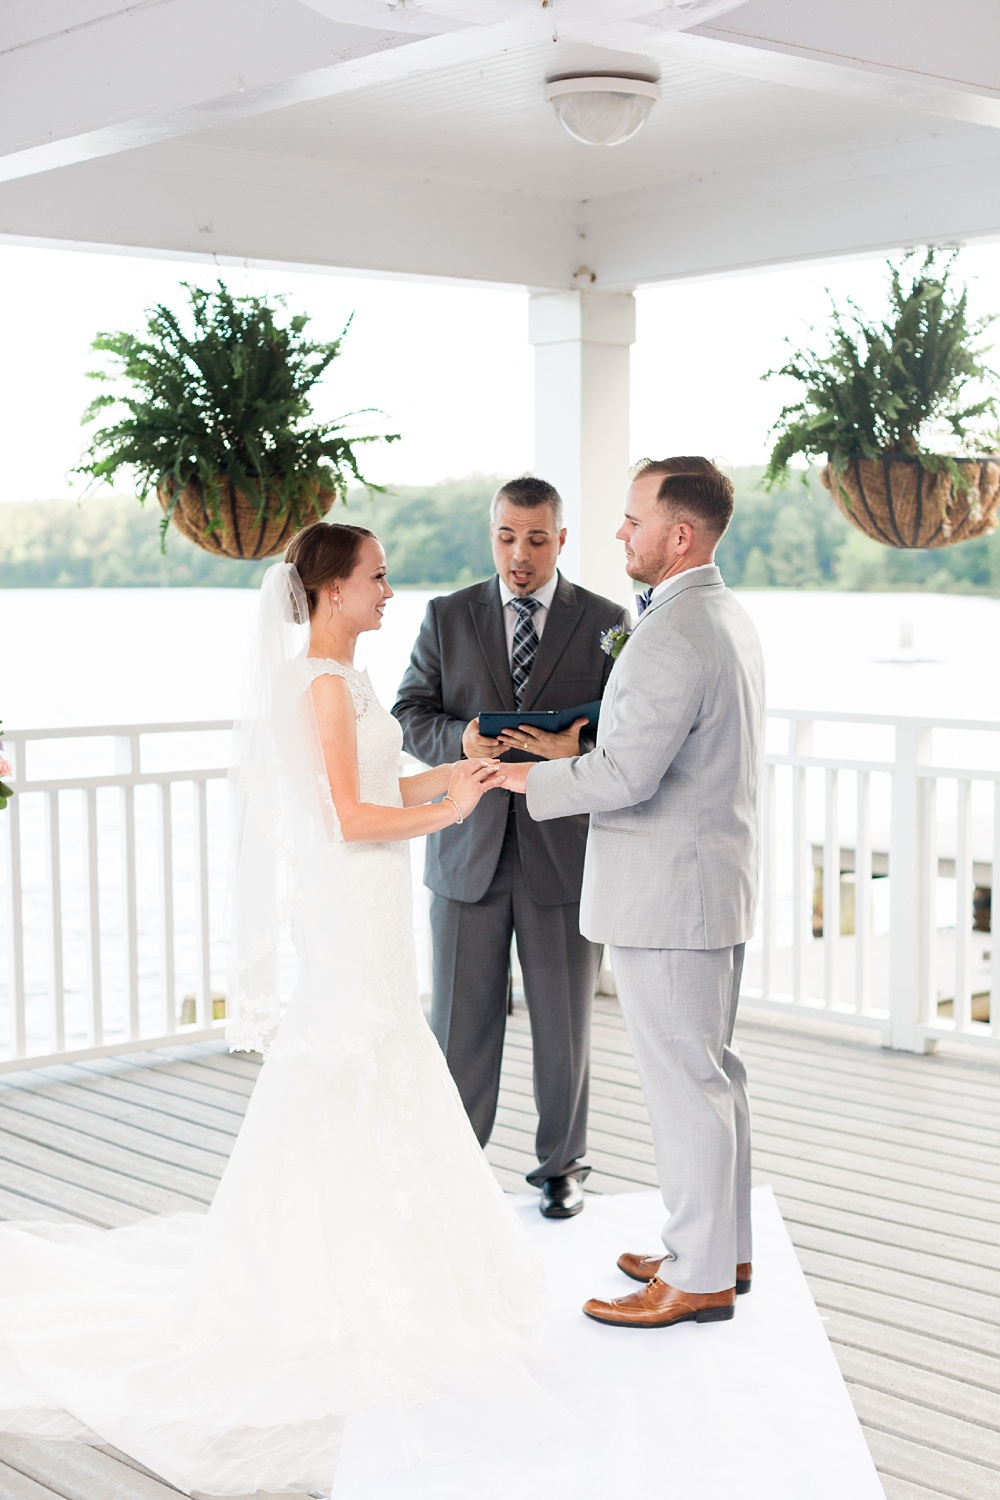 bride places the wedding band on her groom during their wedding ceremony